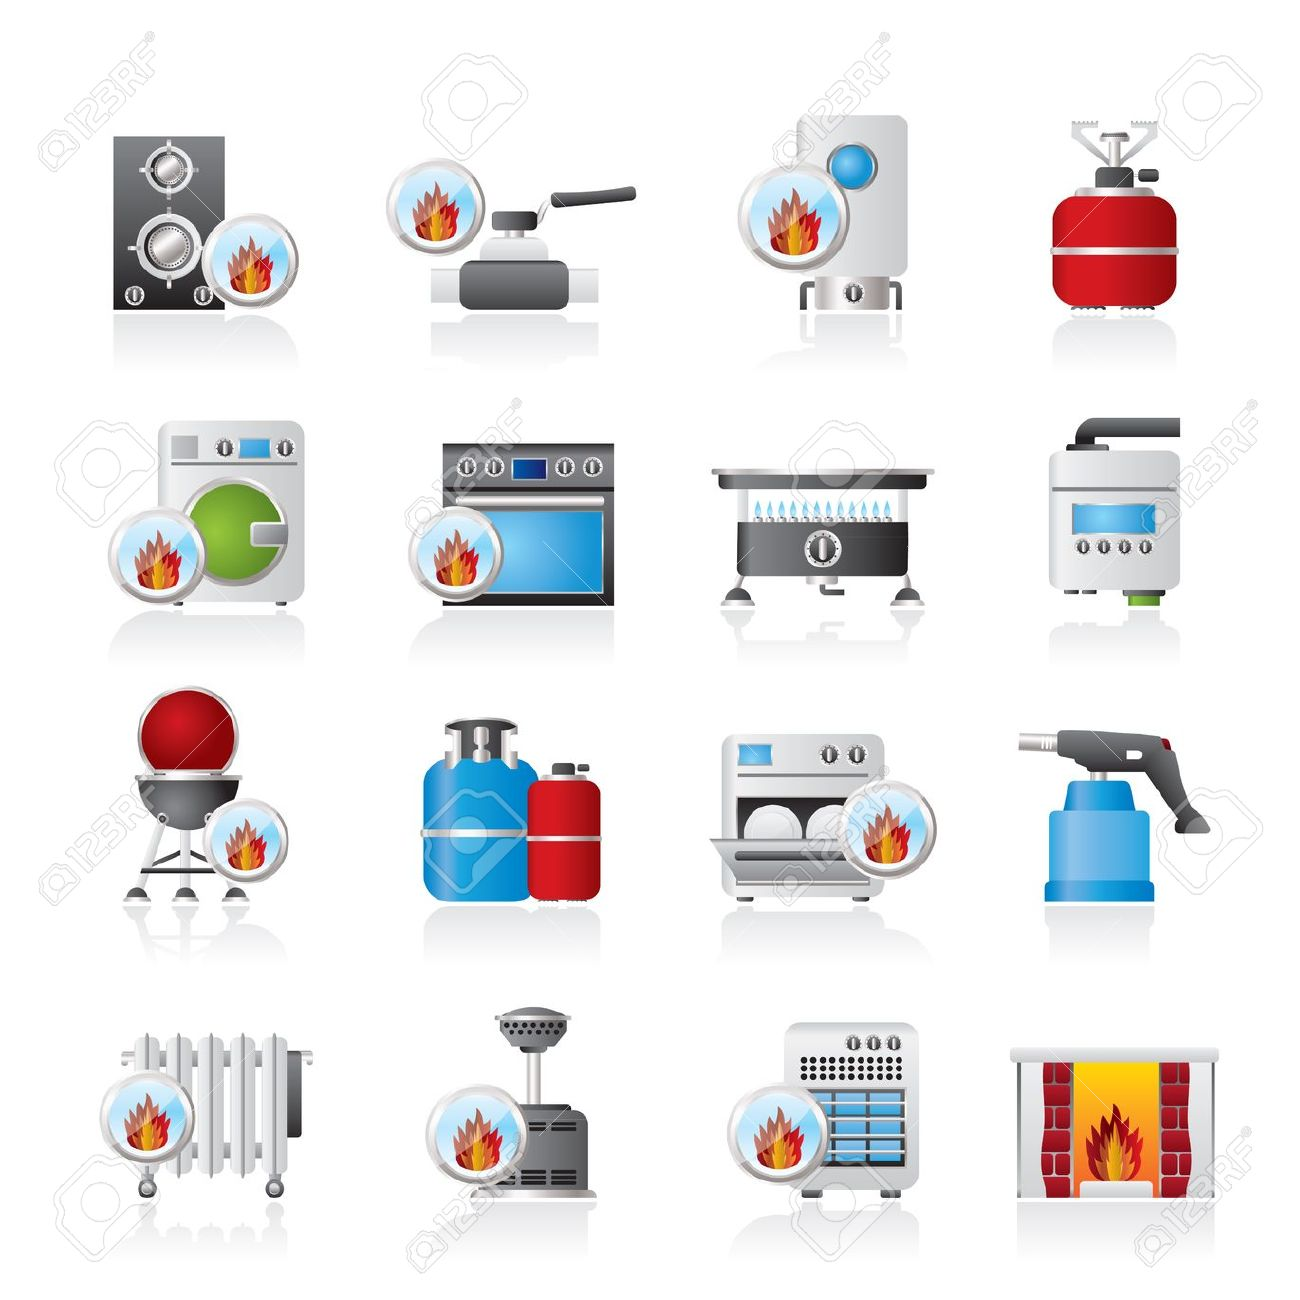 Household Gas Appliances Icons.